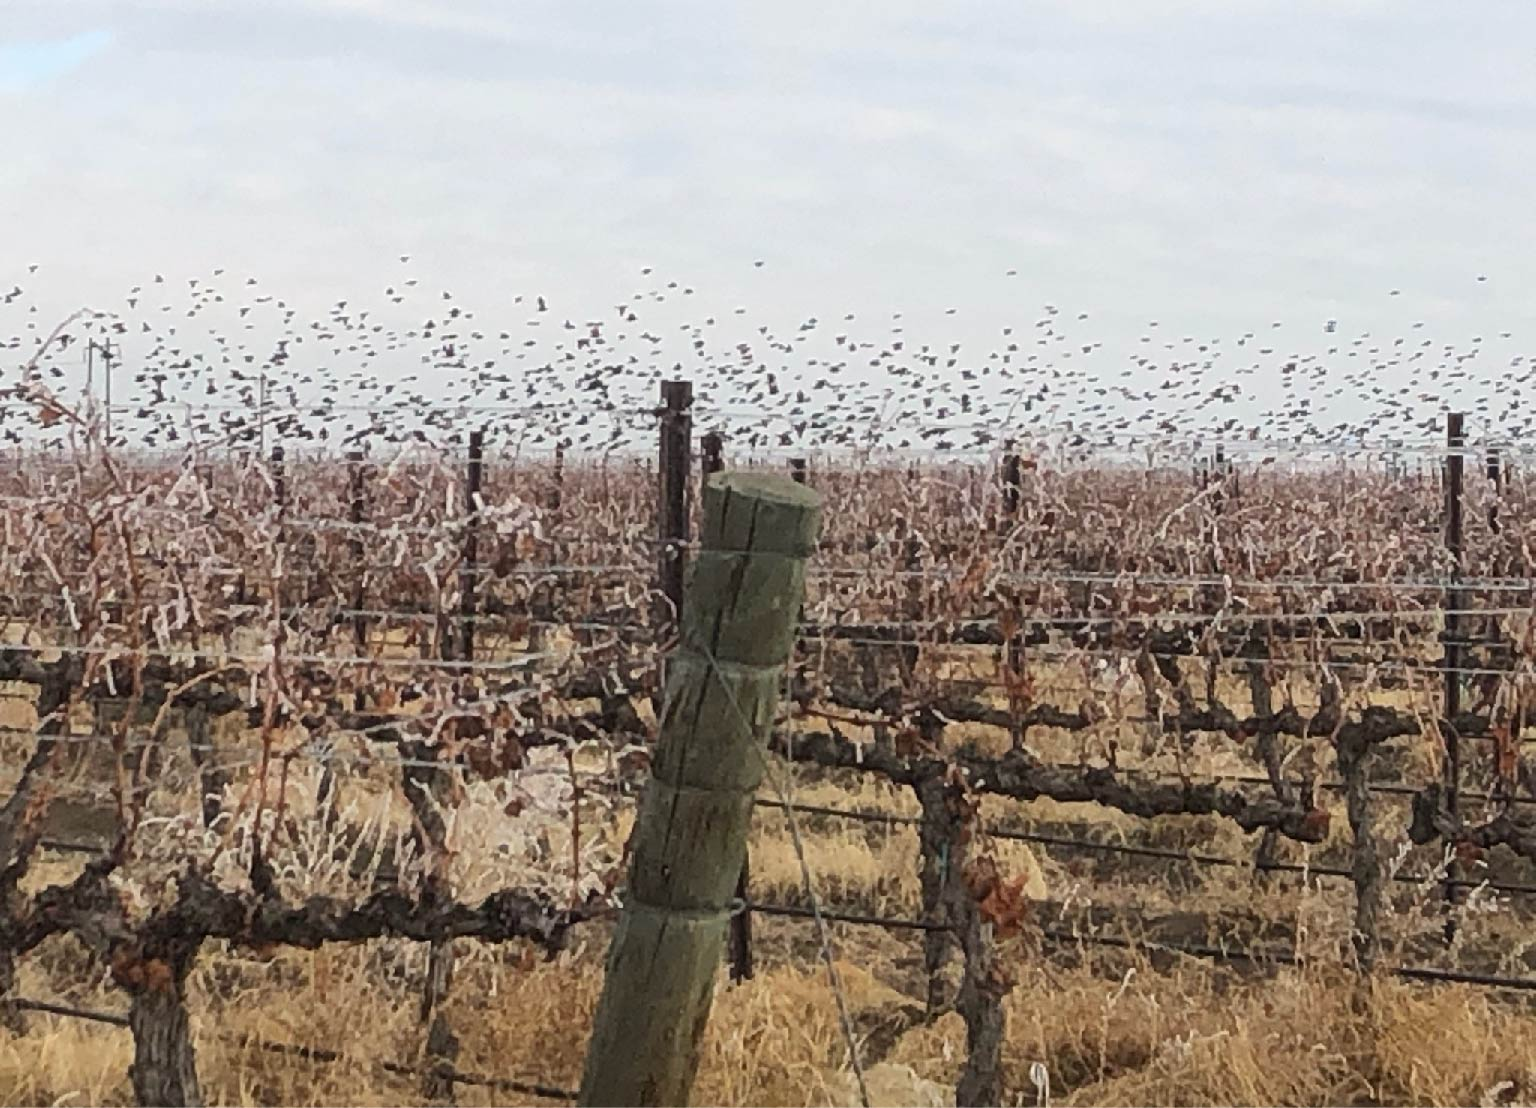 birds in vineyard